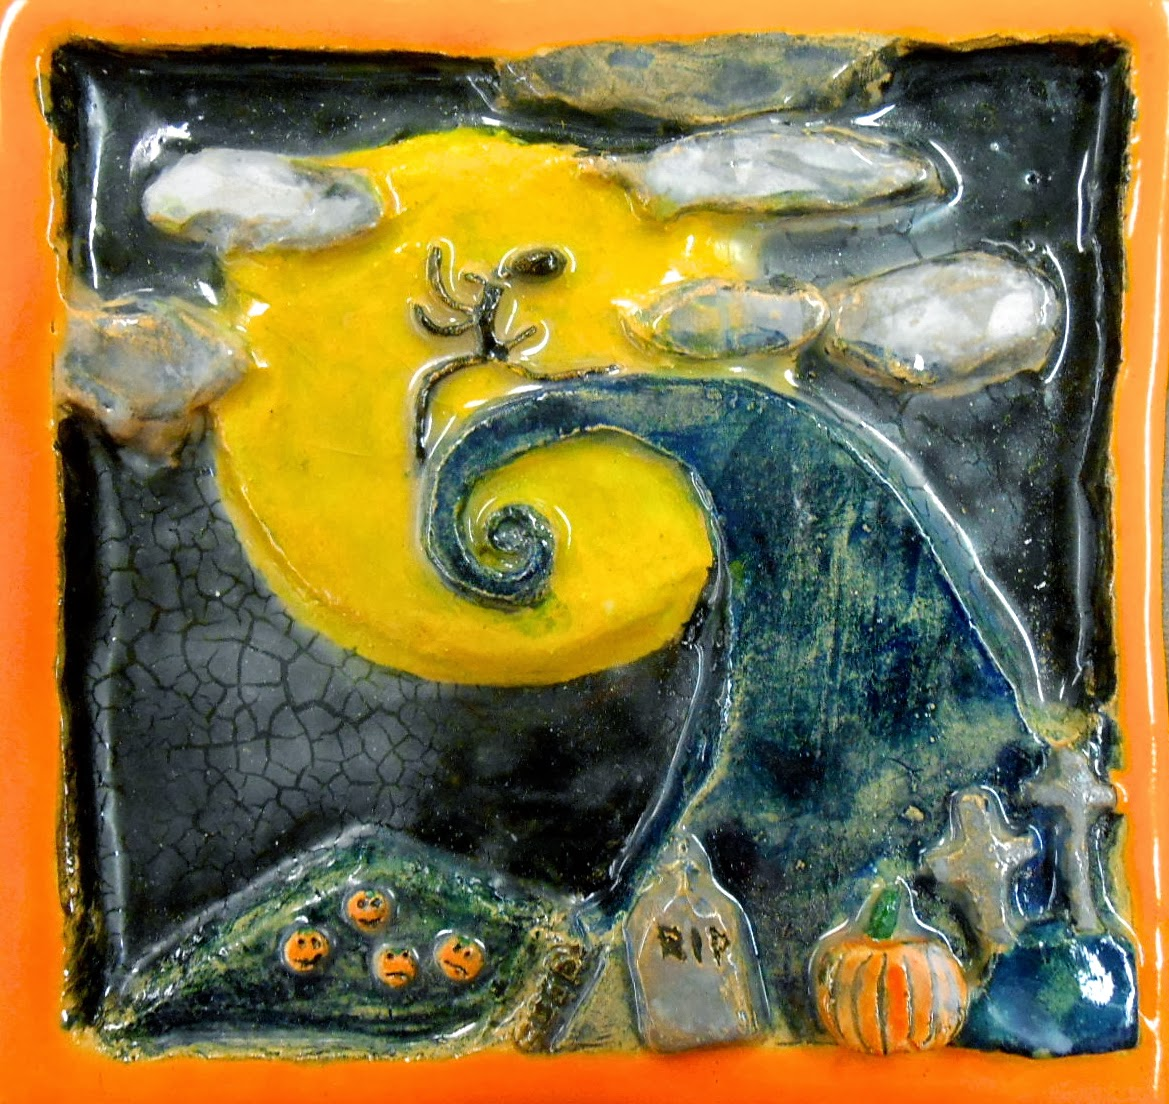 Clay Tile Art. Low Relief Tiles Clay Tile Art M - Mathszone.co